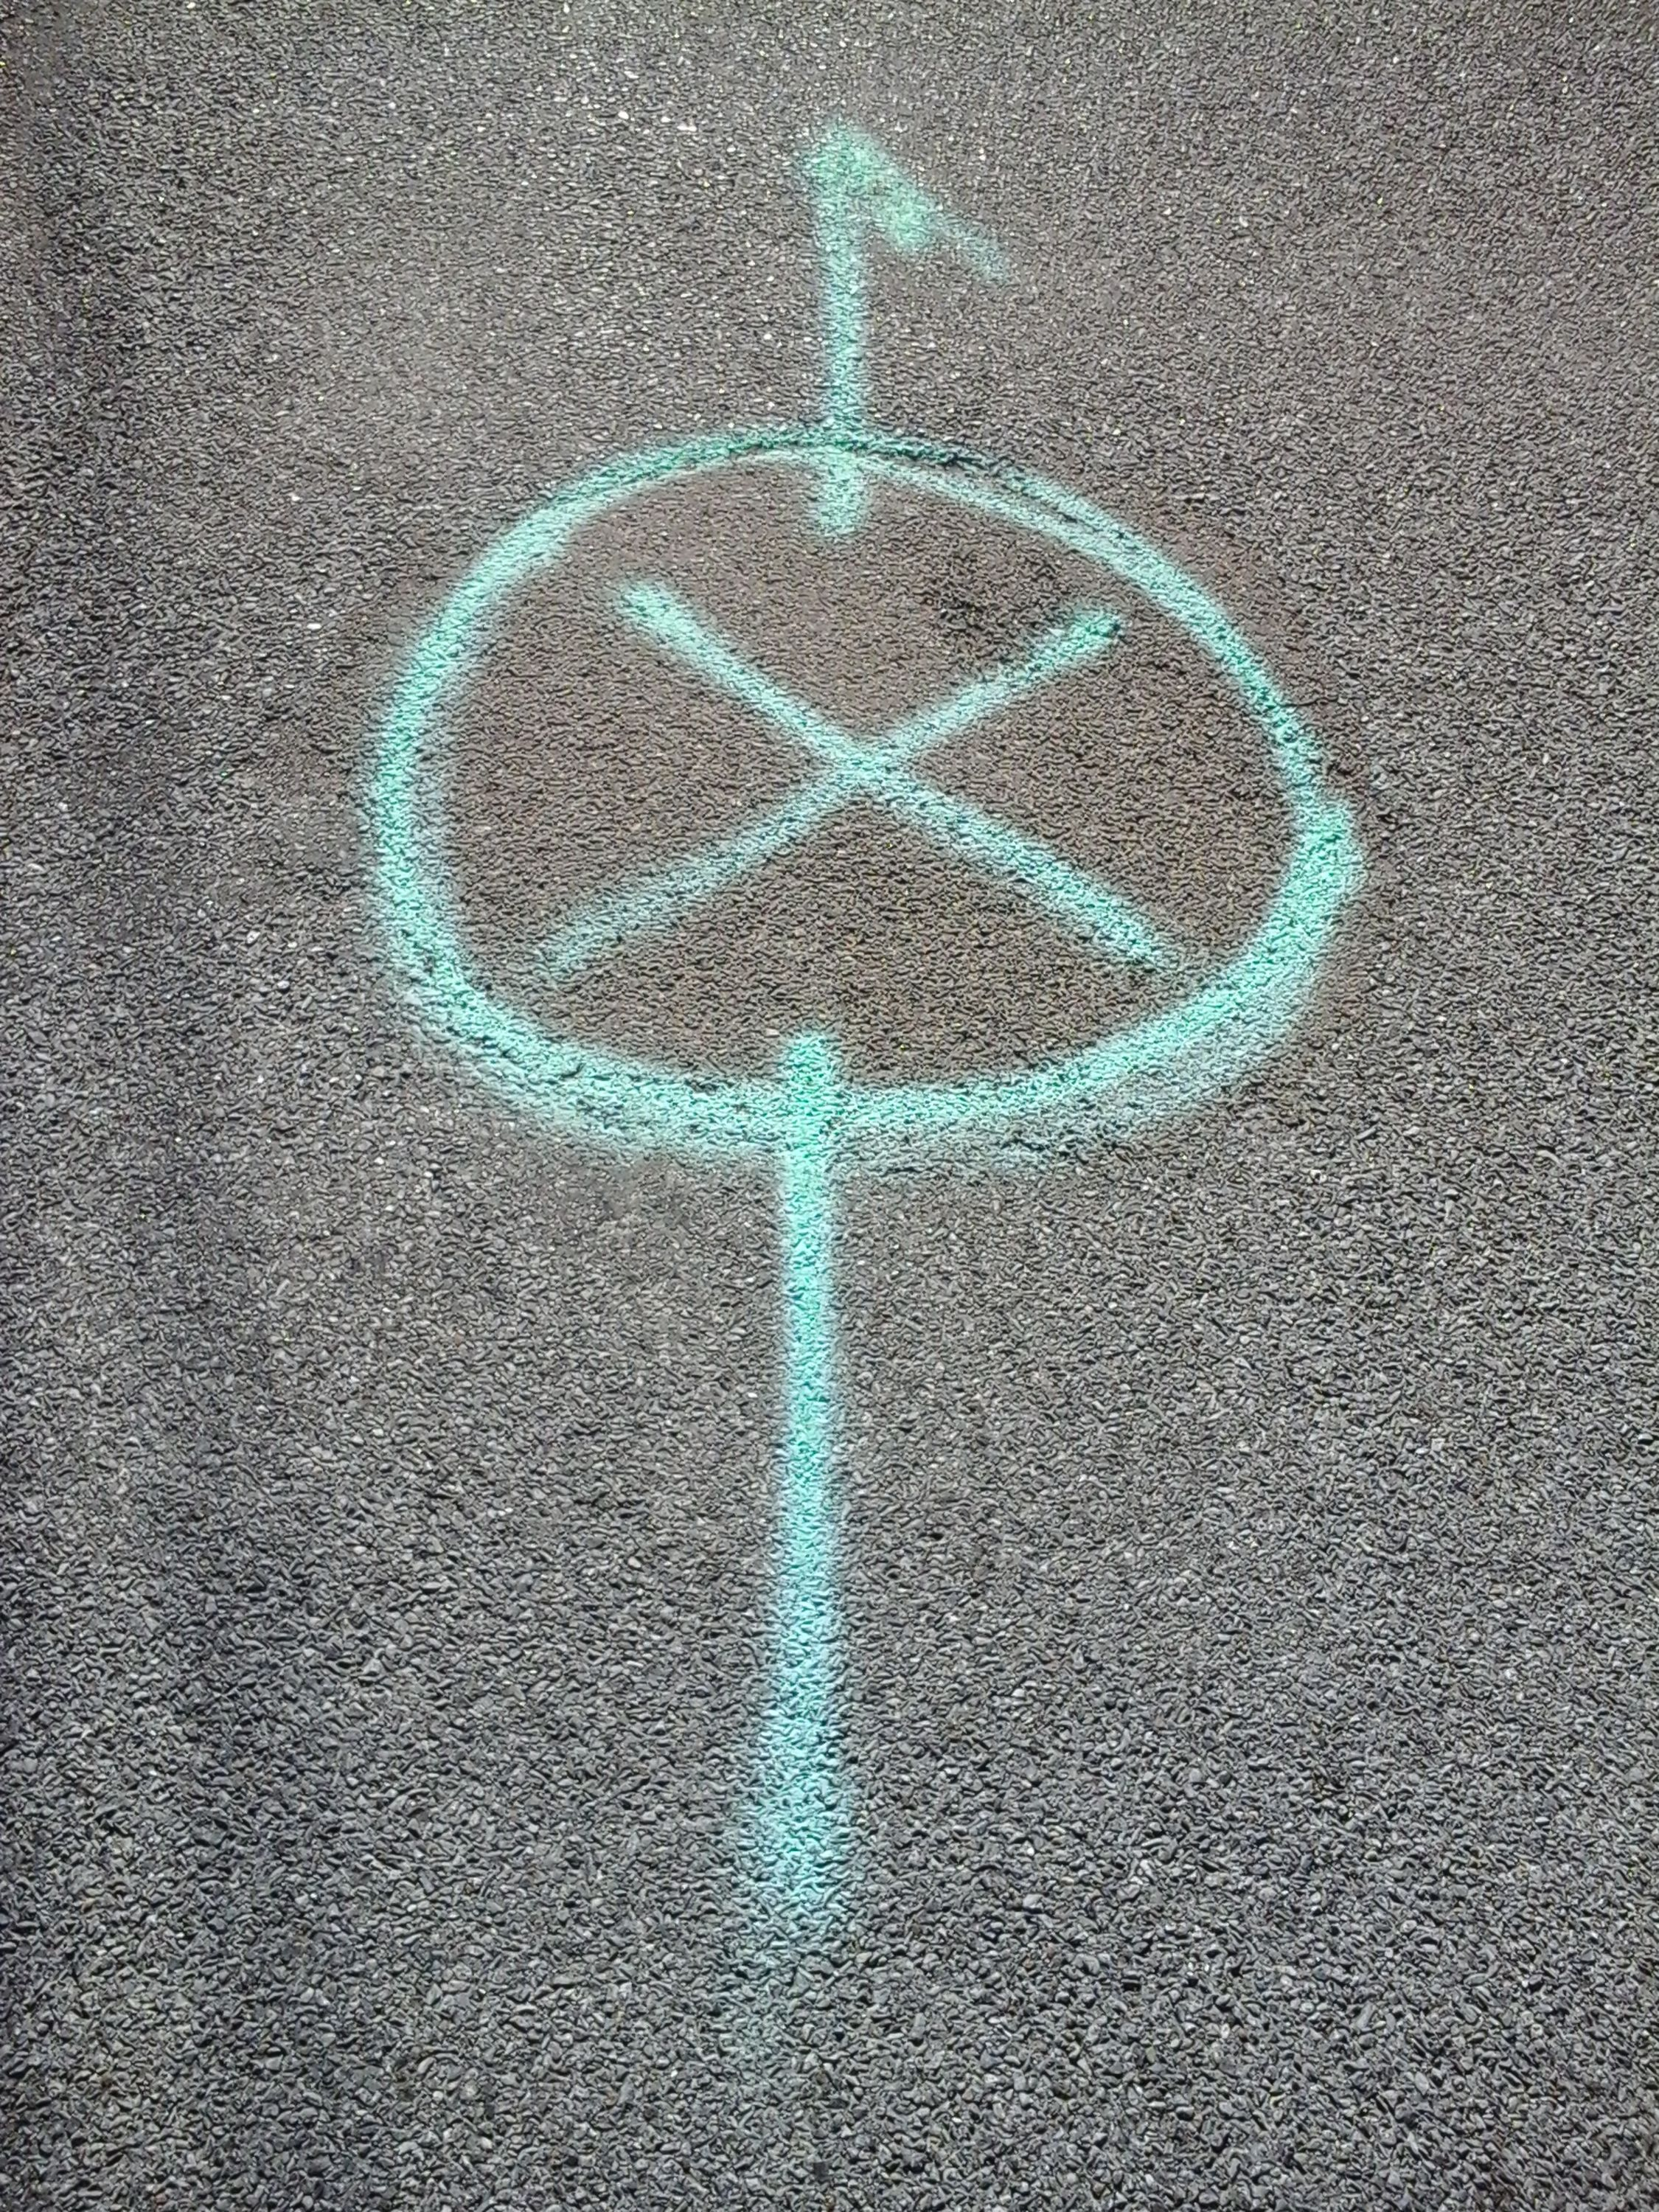 X Marks The Spot Things You Find Painted On The Road Painted Roads Samsung Galaxy Tablet